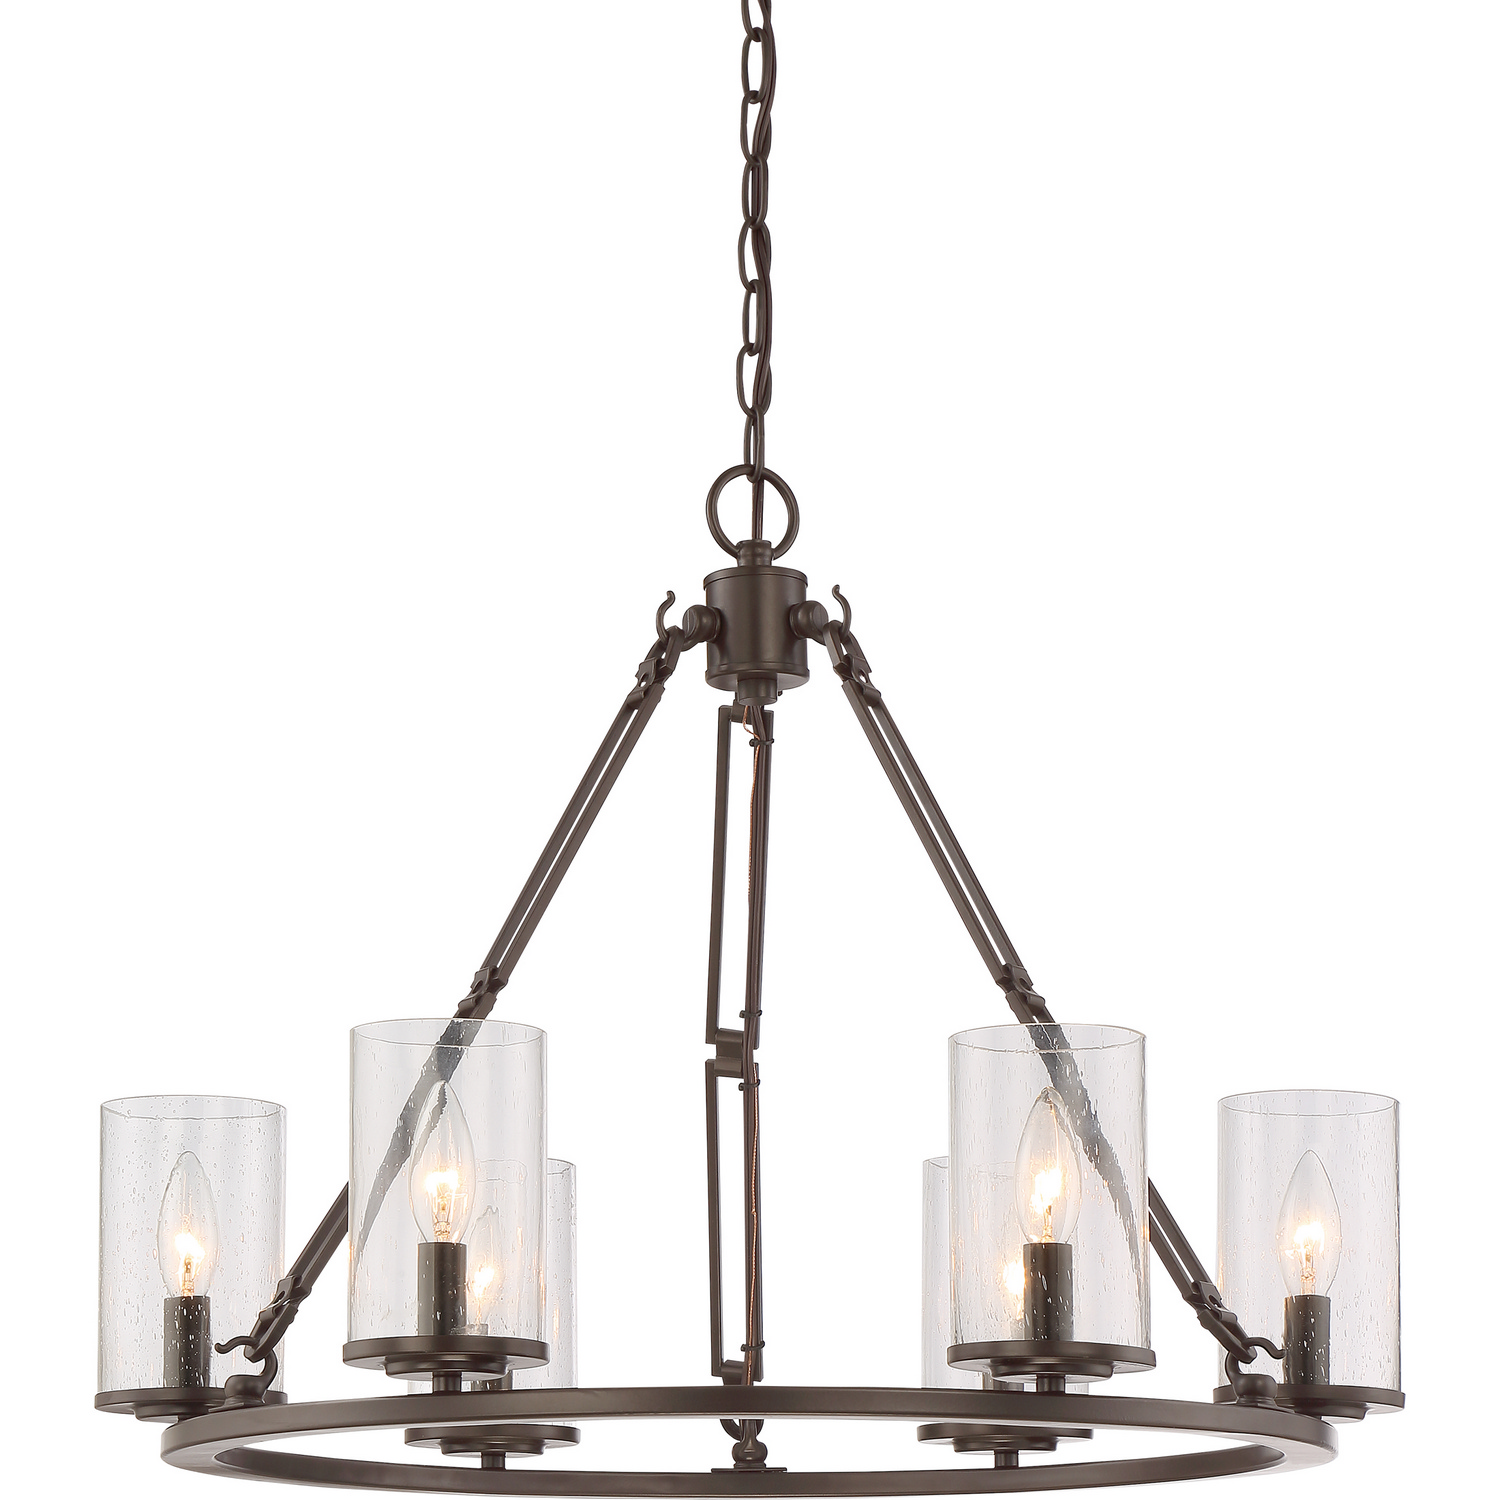 Quoizel Buchanan Chandelier American Craftsman Style Lighting